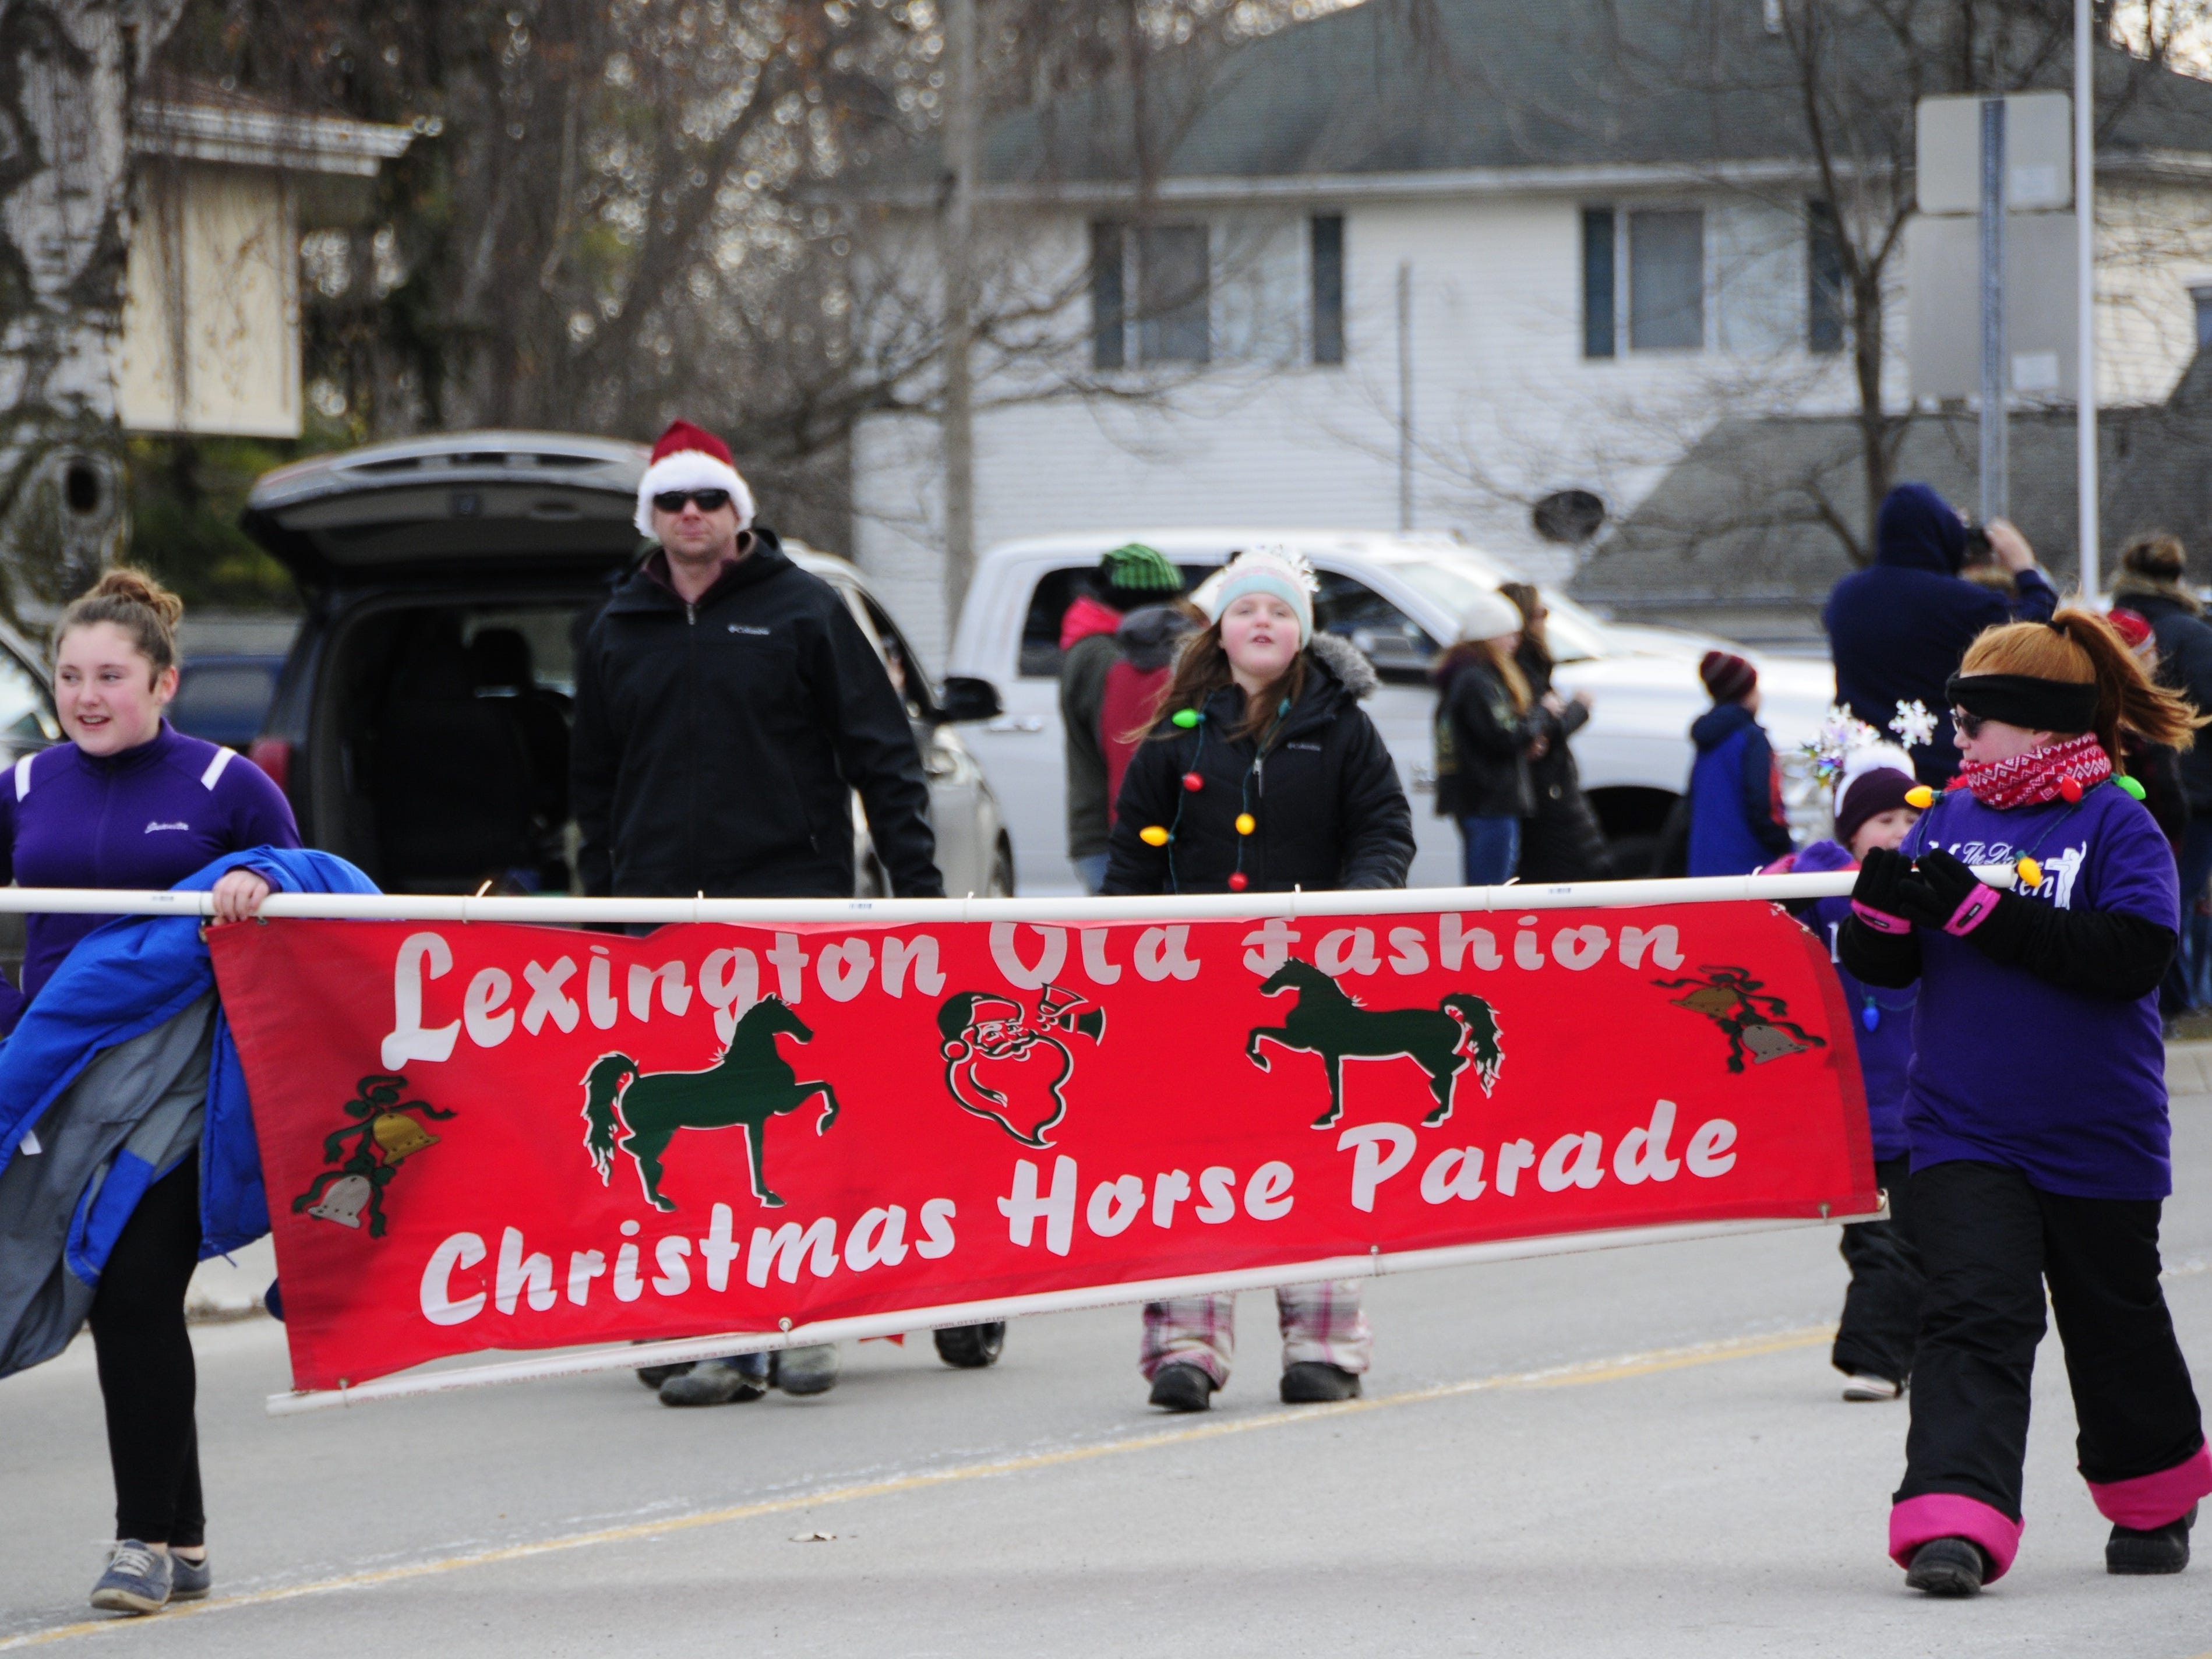 Kids march with a banner at the start of the Lexington Old-Fashioned Christmas Horse Parade on Saturday, Dec. 8, 2018.